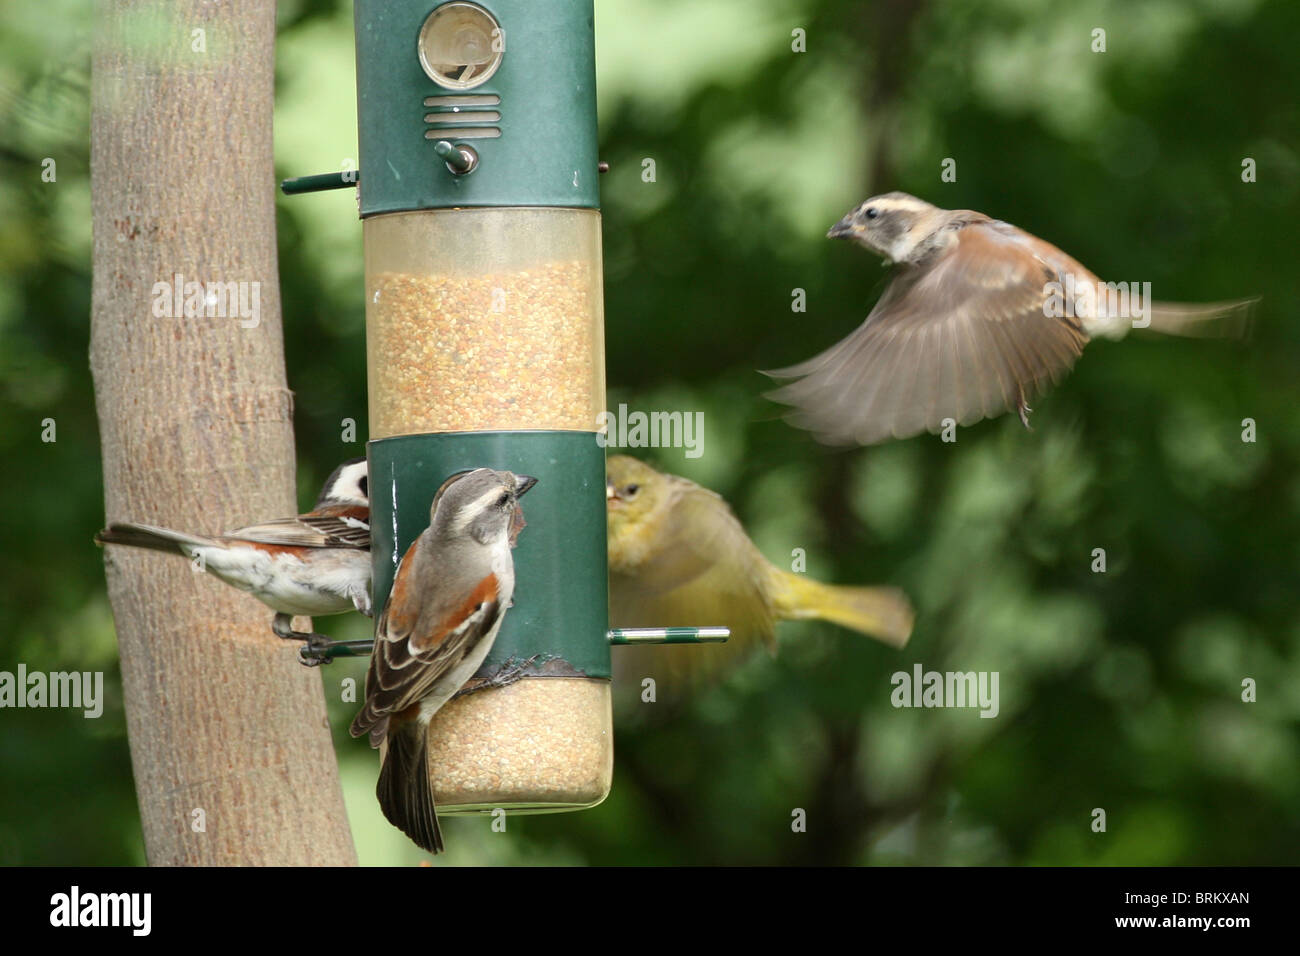 Grey-headed sparrows at bird-feeder with one about to land and another in flight - Stock Image